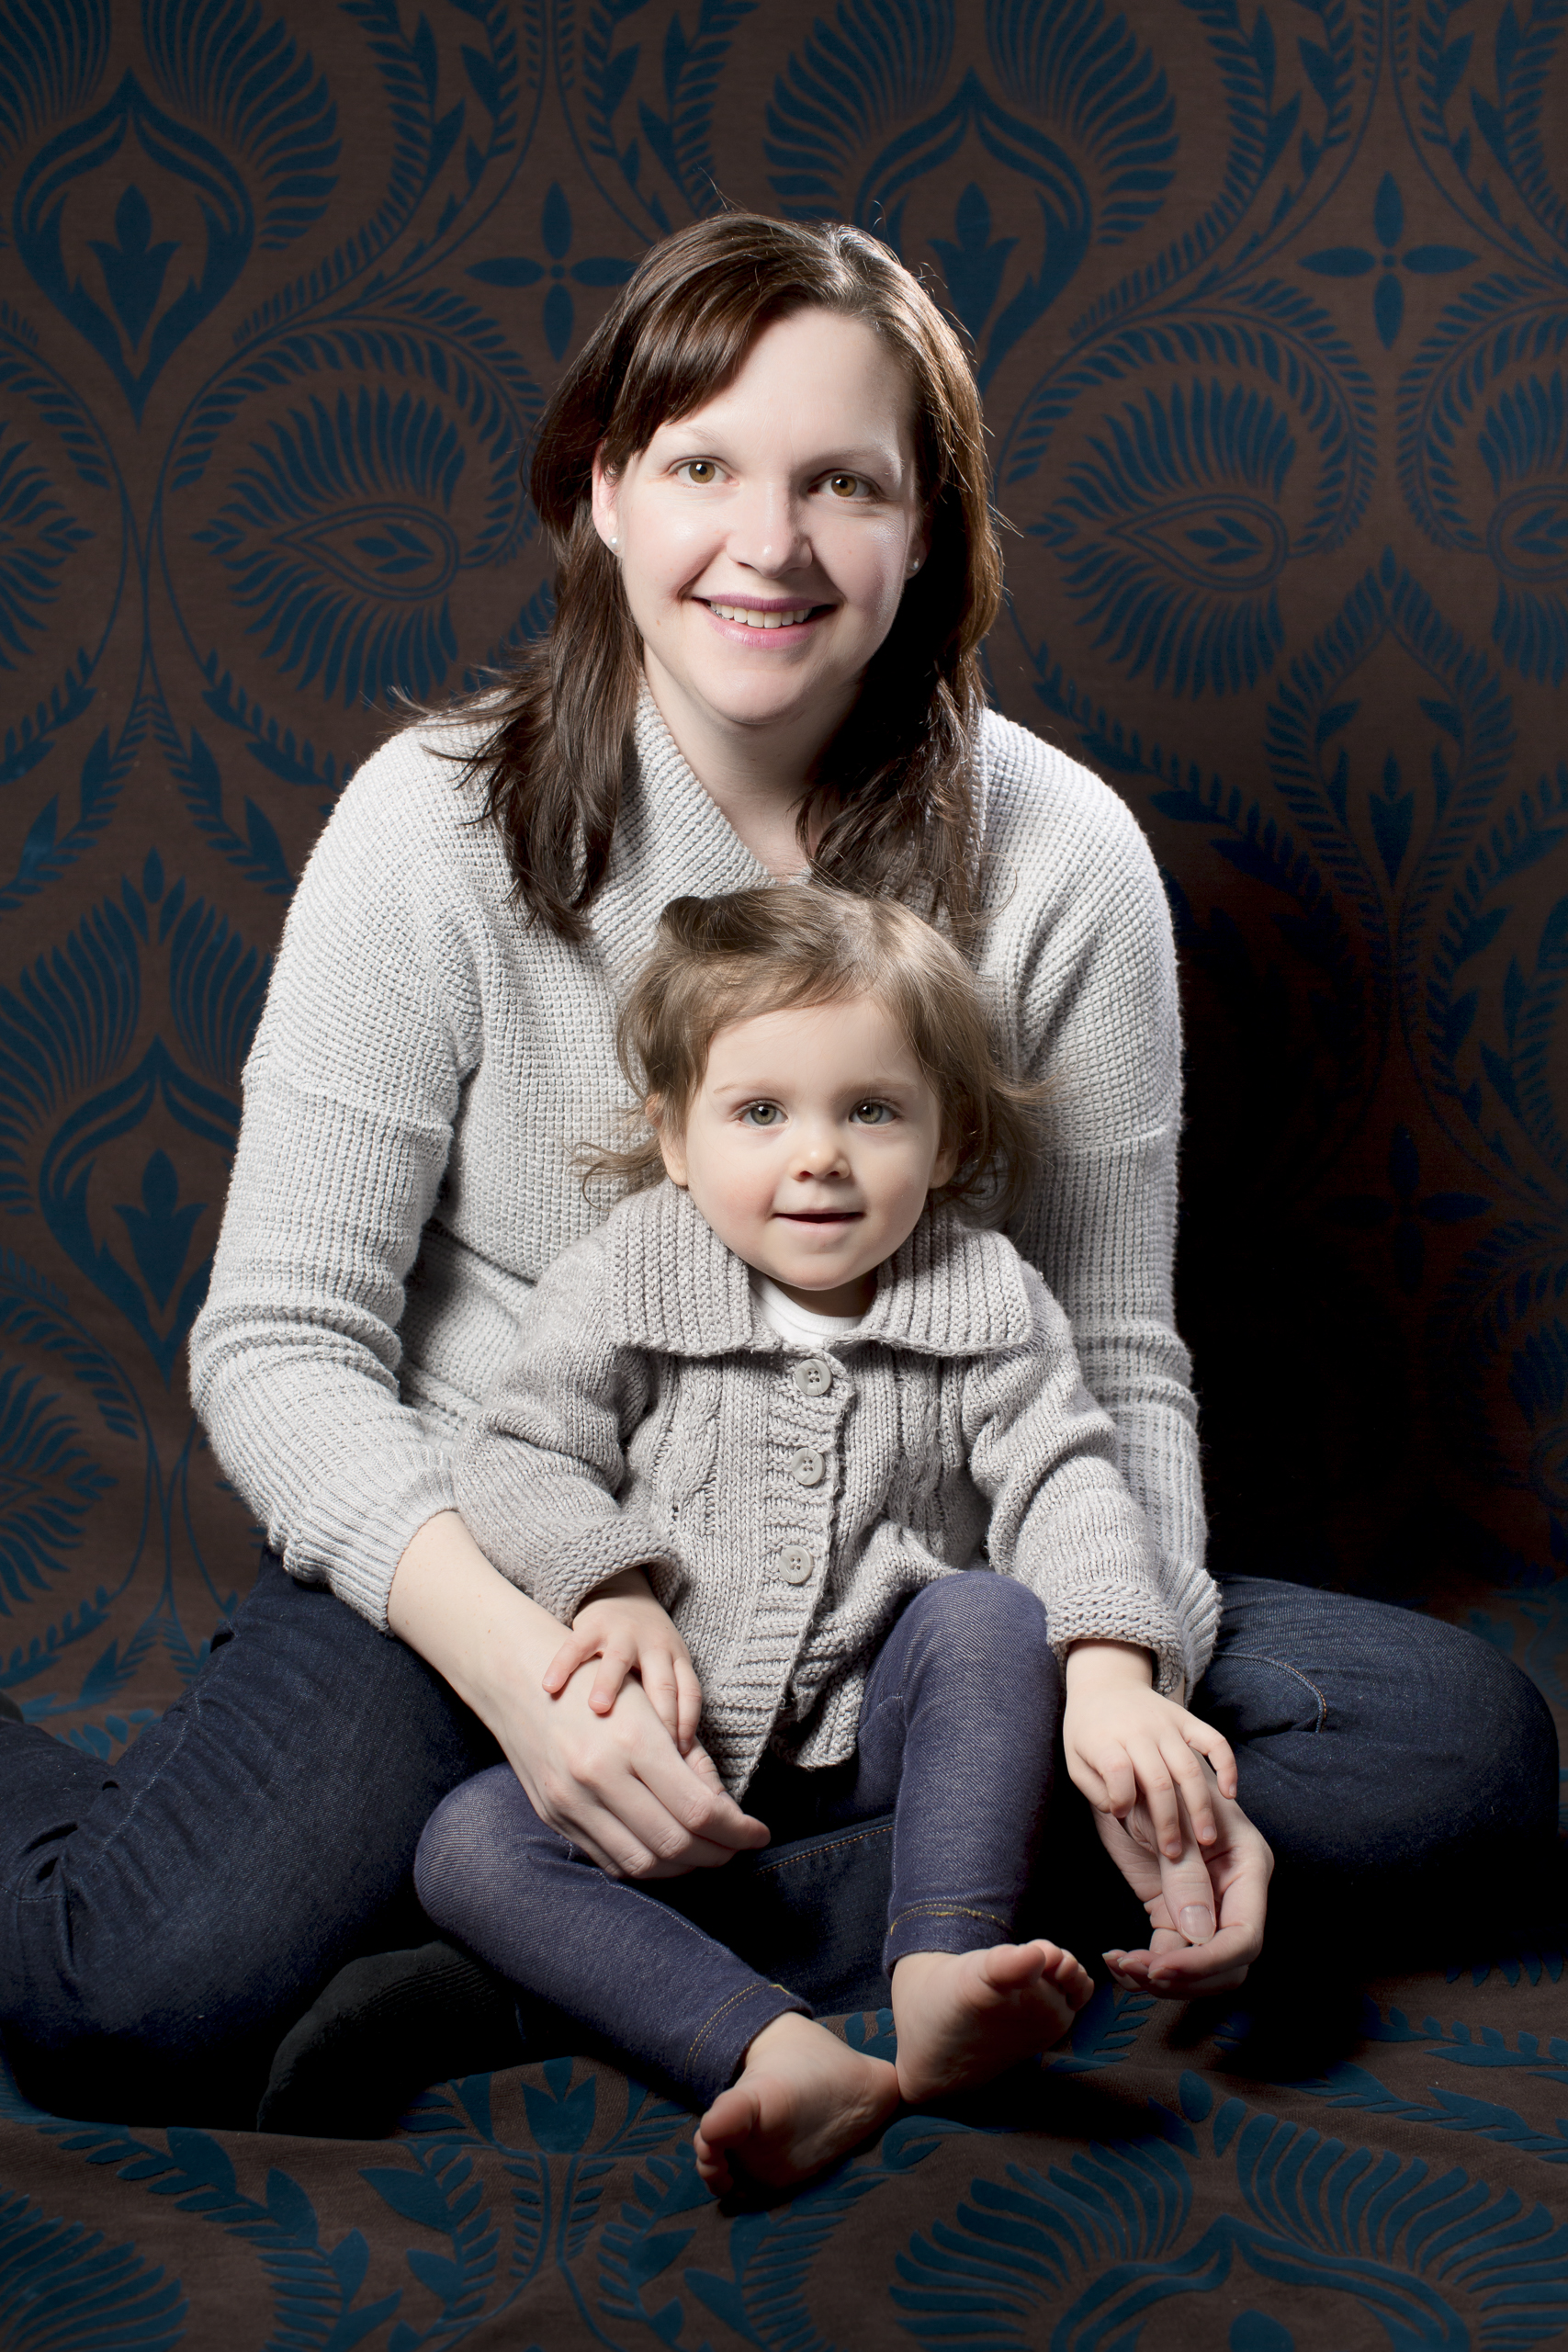 31 newborn baby momma and baby sister portrait photography session jeans and knit sweaters.jpg